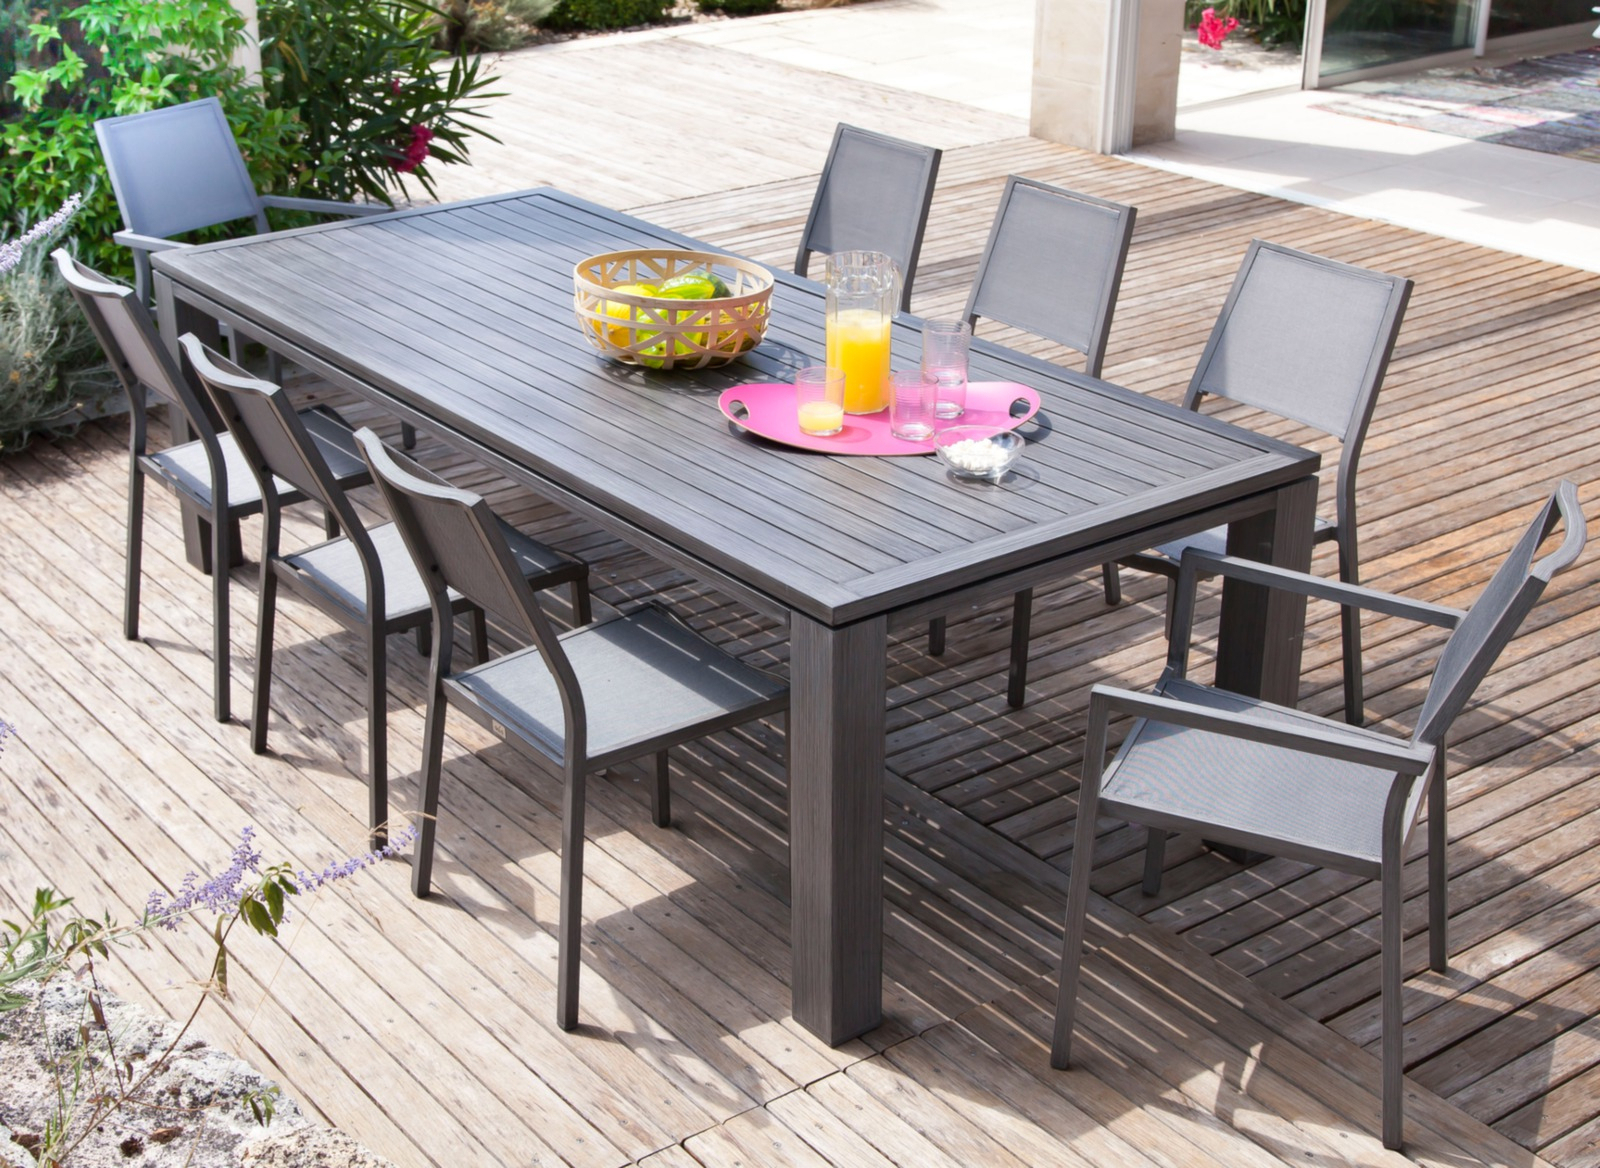 Ensemble Chaise Et Table De Jardin Sol Salon Aluminium ... encequiconcerne Auchan Table De Jardin